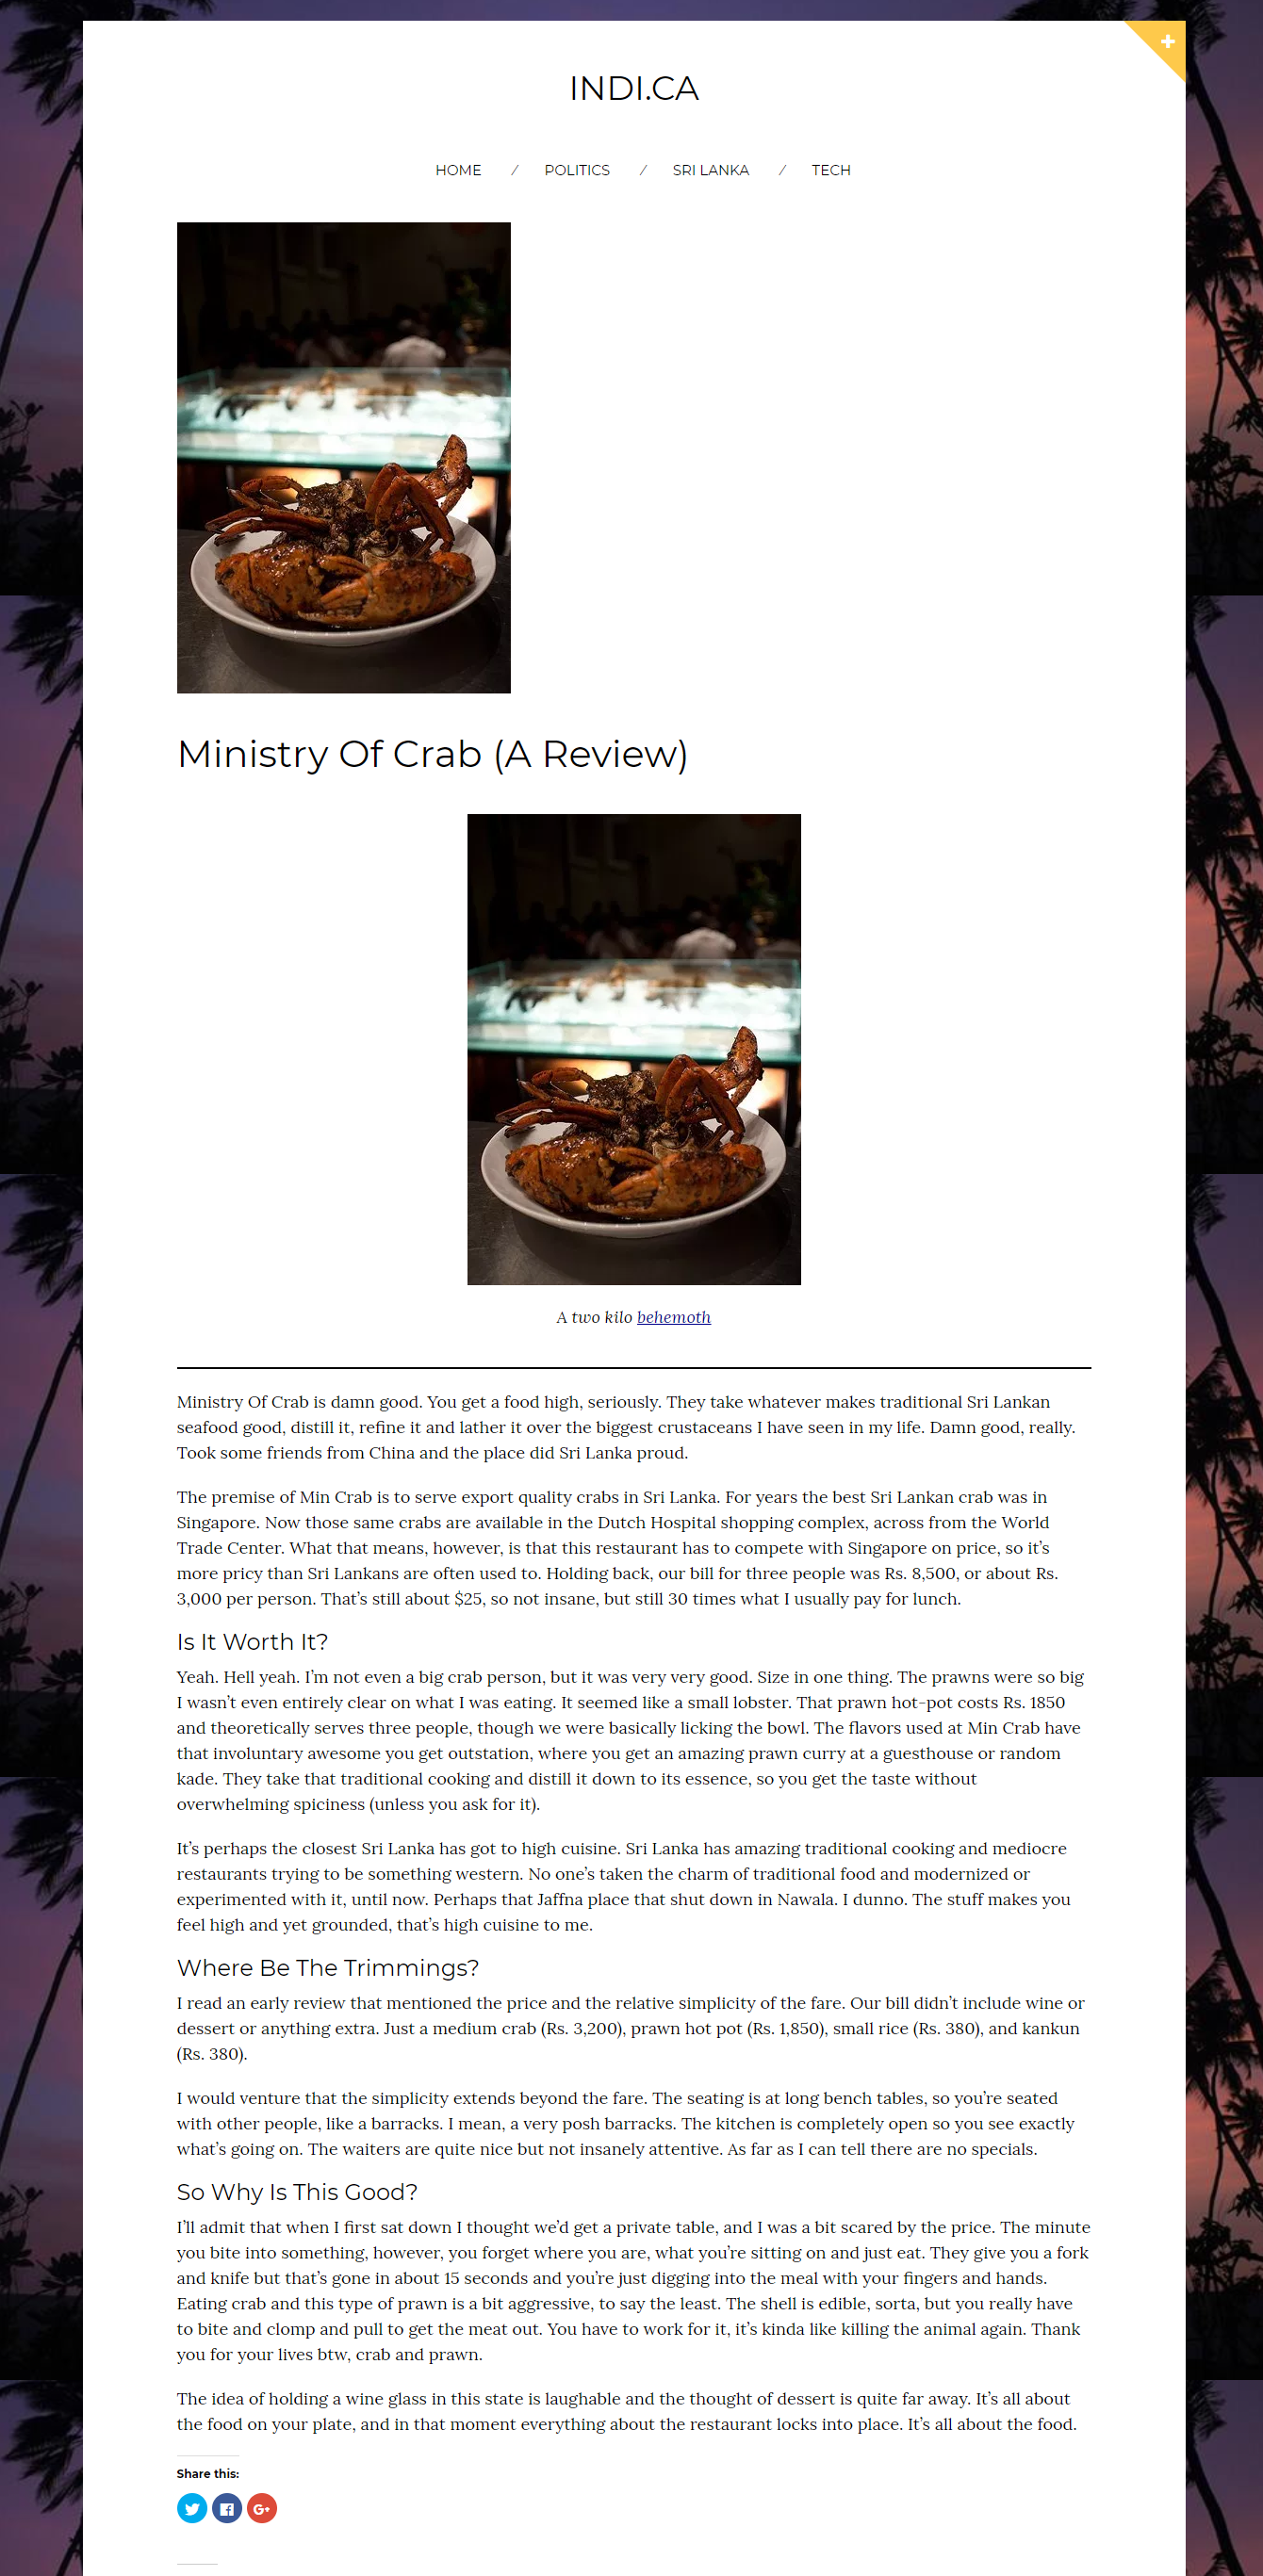 Ministry of Crab Review